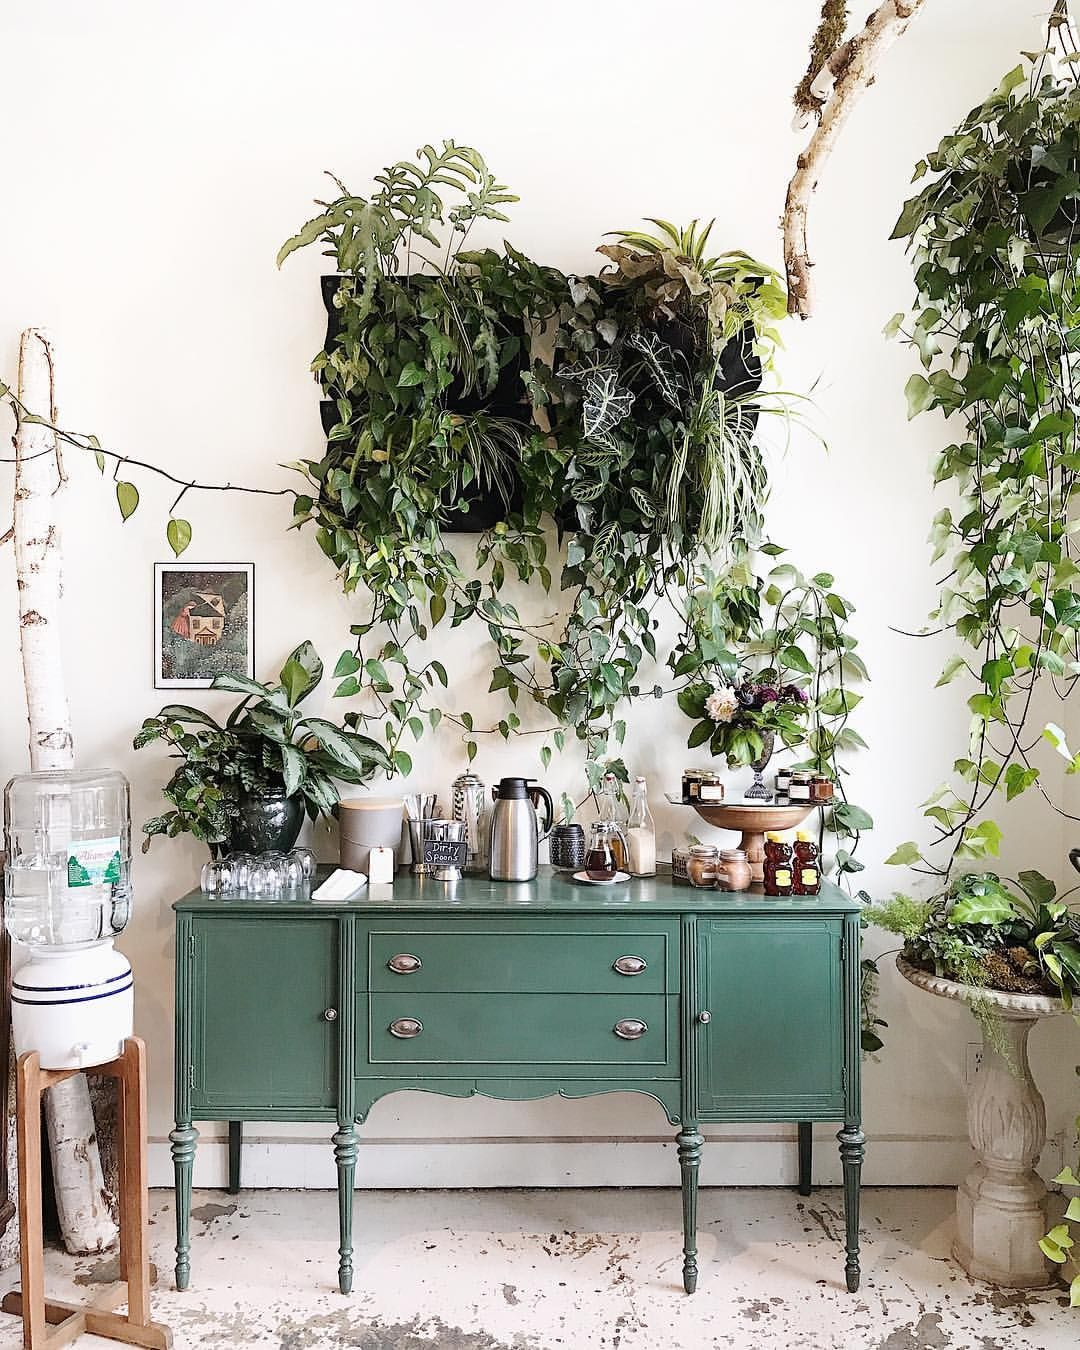 Pin By Michelle Schank On Home Decorating: Urban Jungle Bloggers